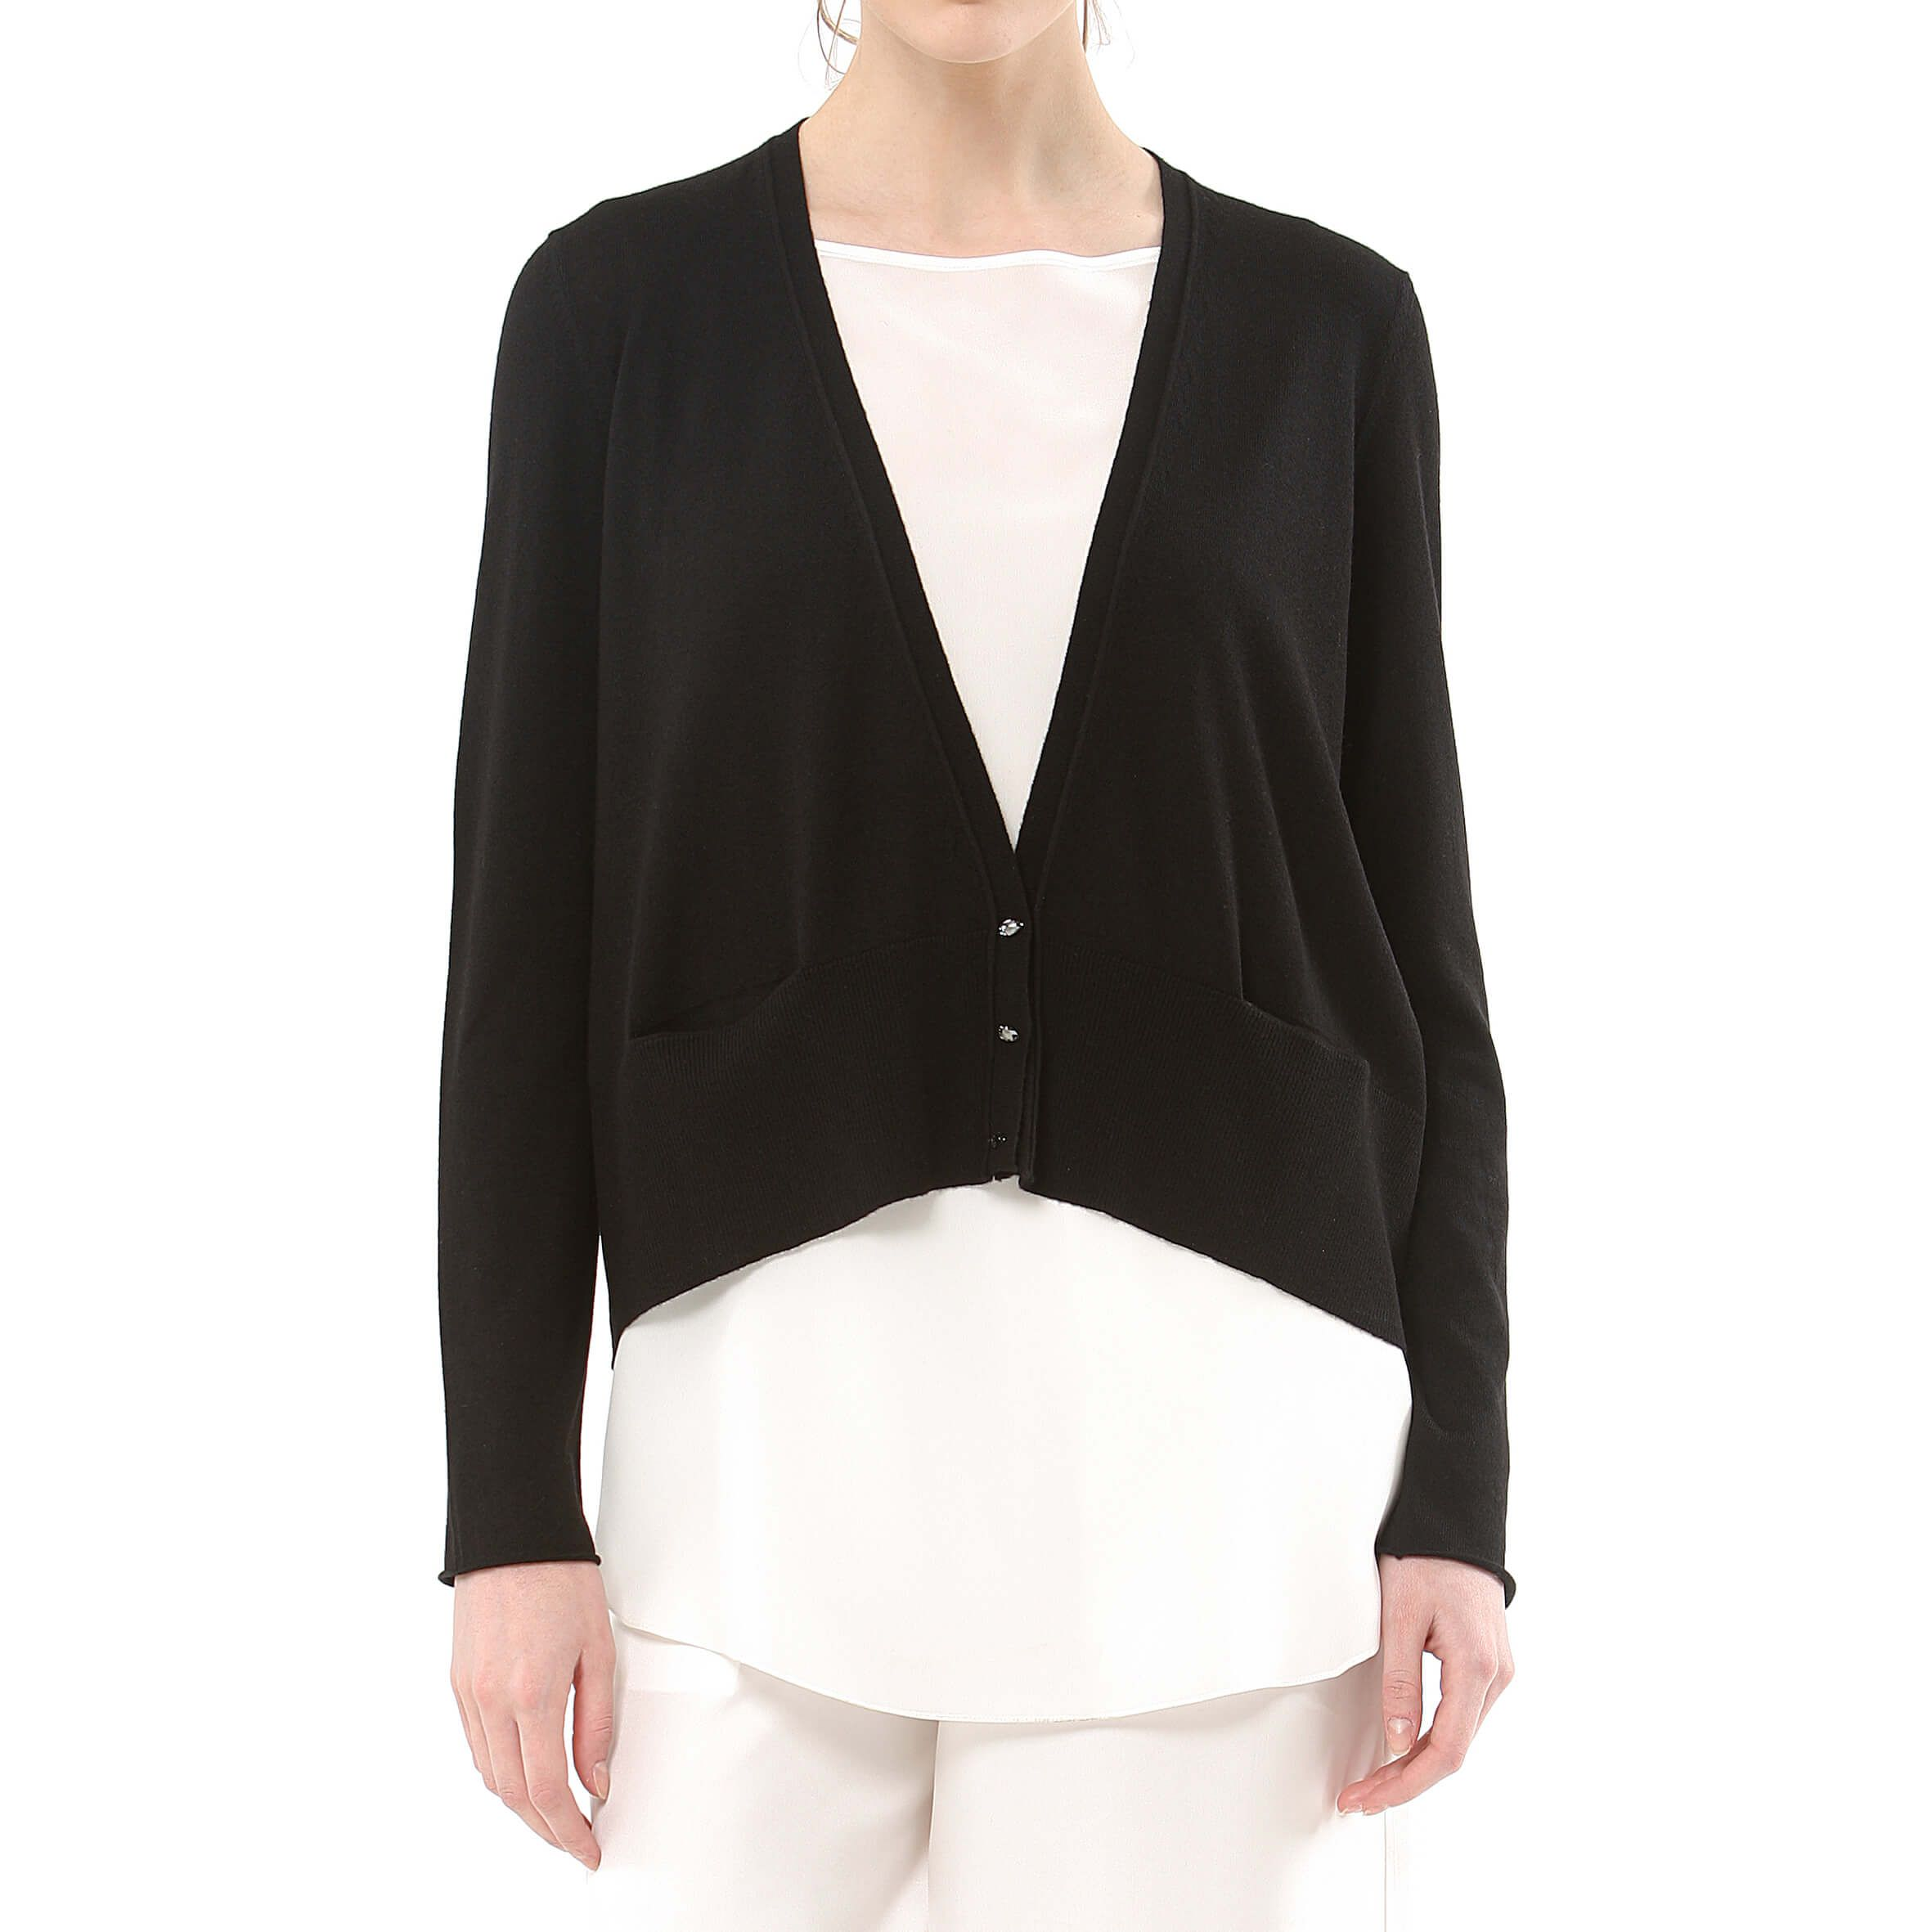 59cdc0b8d8 black cropped cashmere cardigan